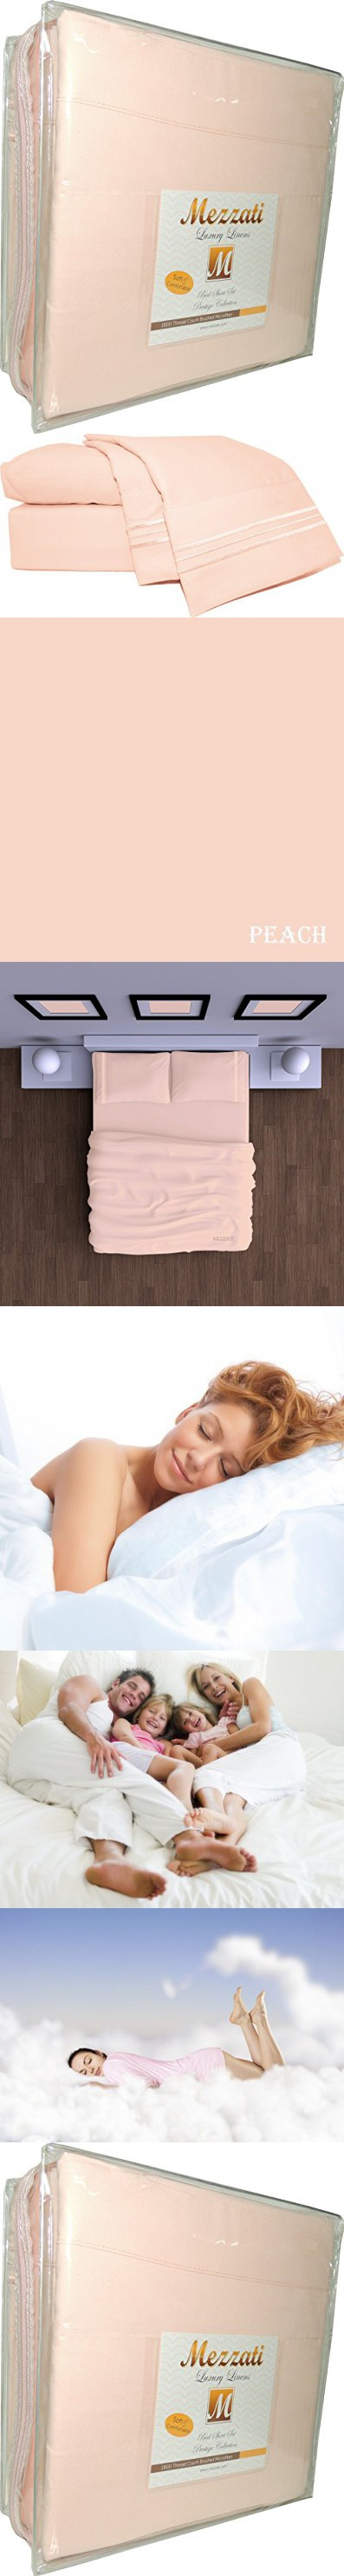 Mezzati Luxury Bed Sheets Set   Sale   Best, Softest, Coziest Sheets Ever!  1800 Prestige Collection Brushed Microfiber Bedding (Peach, Queen)